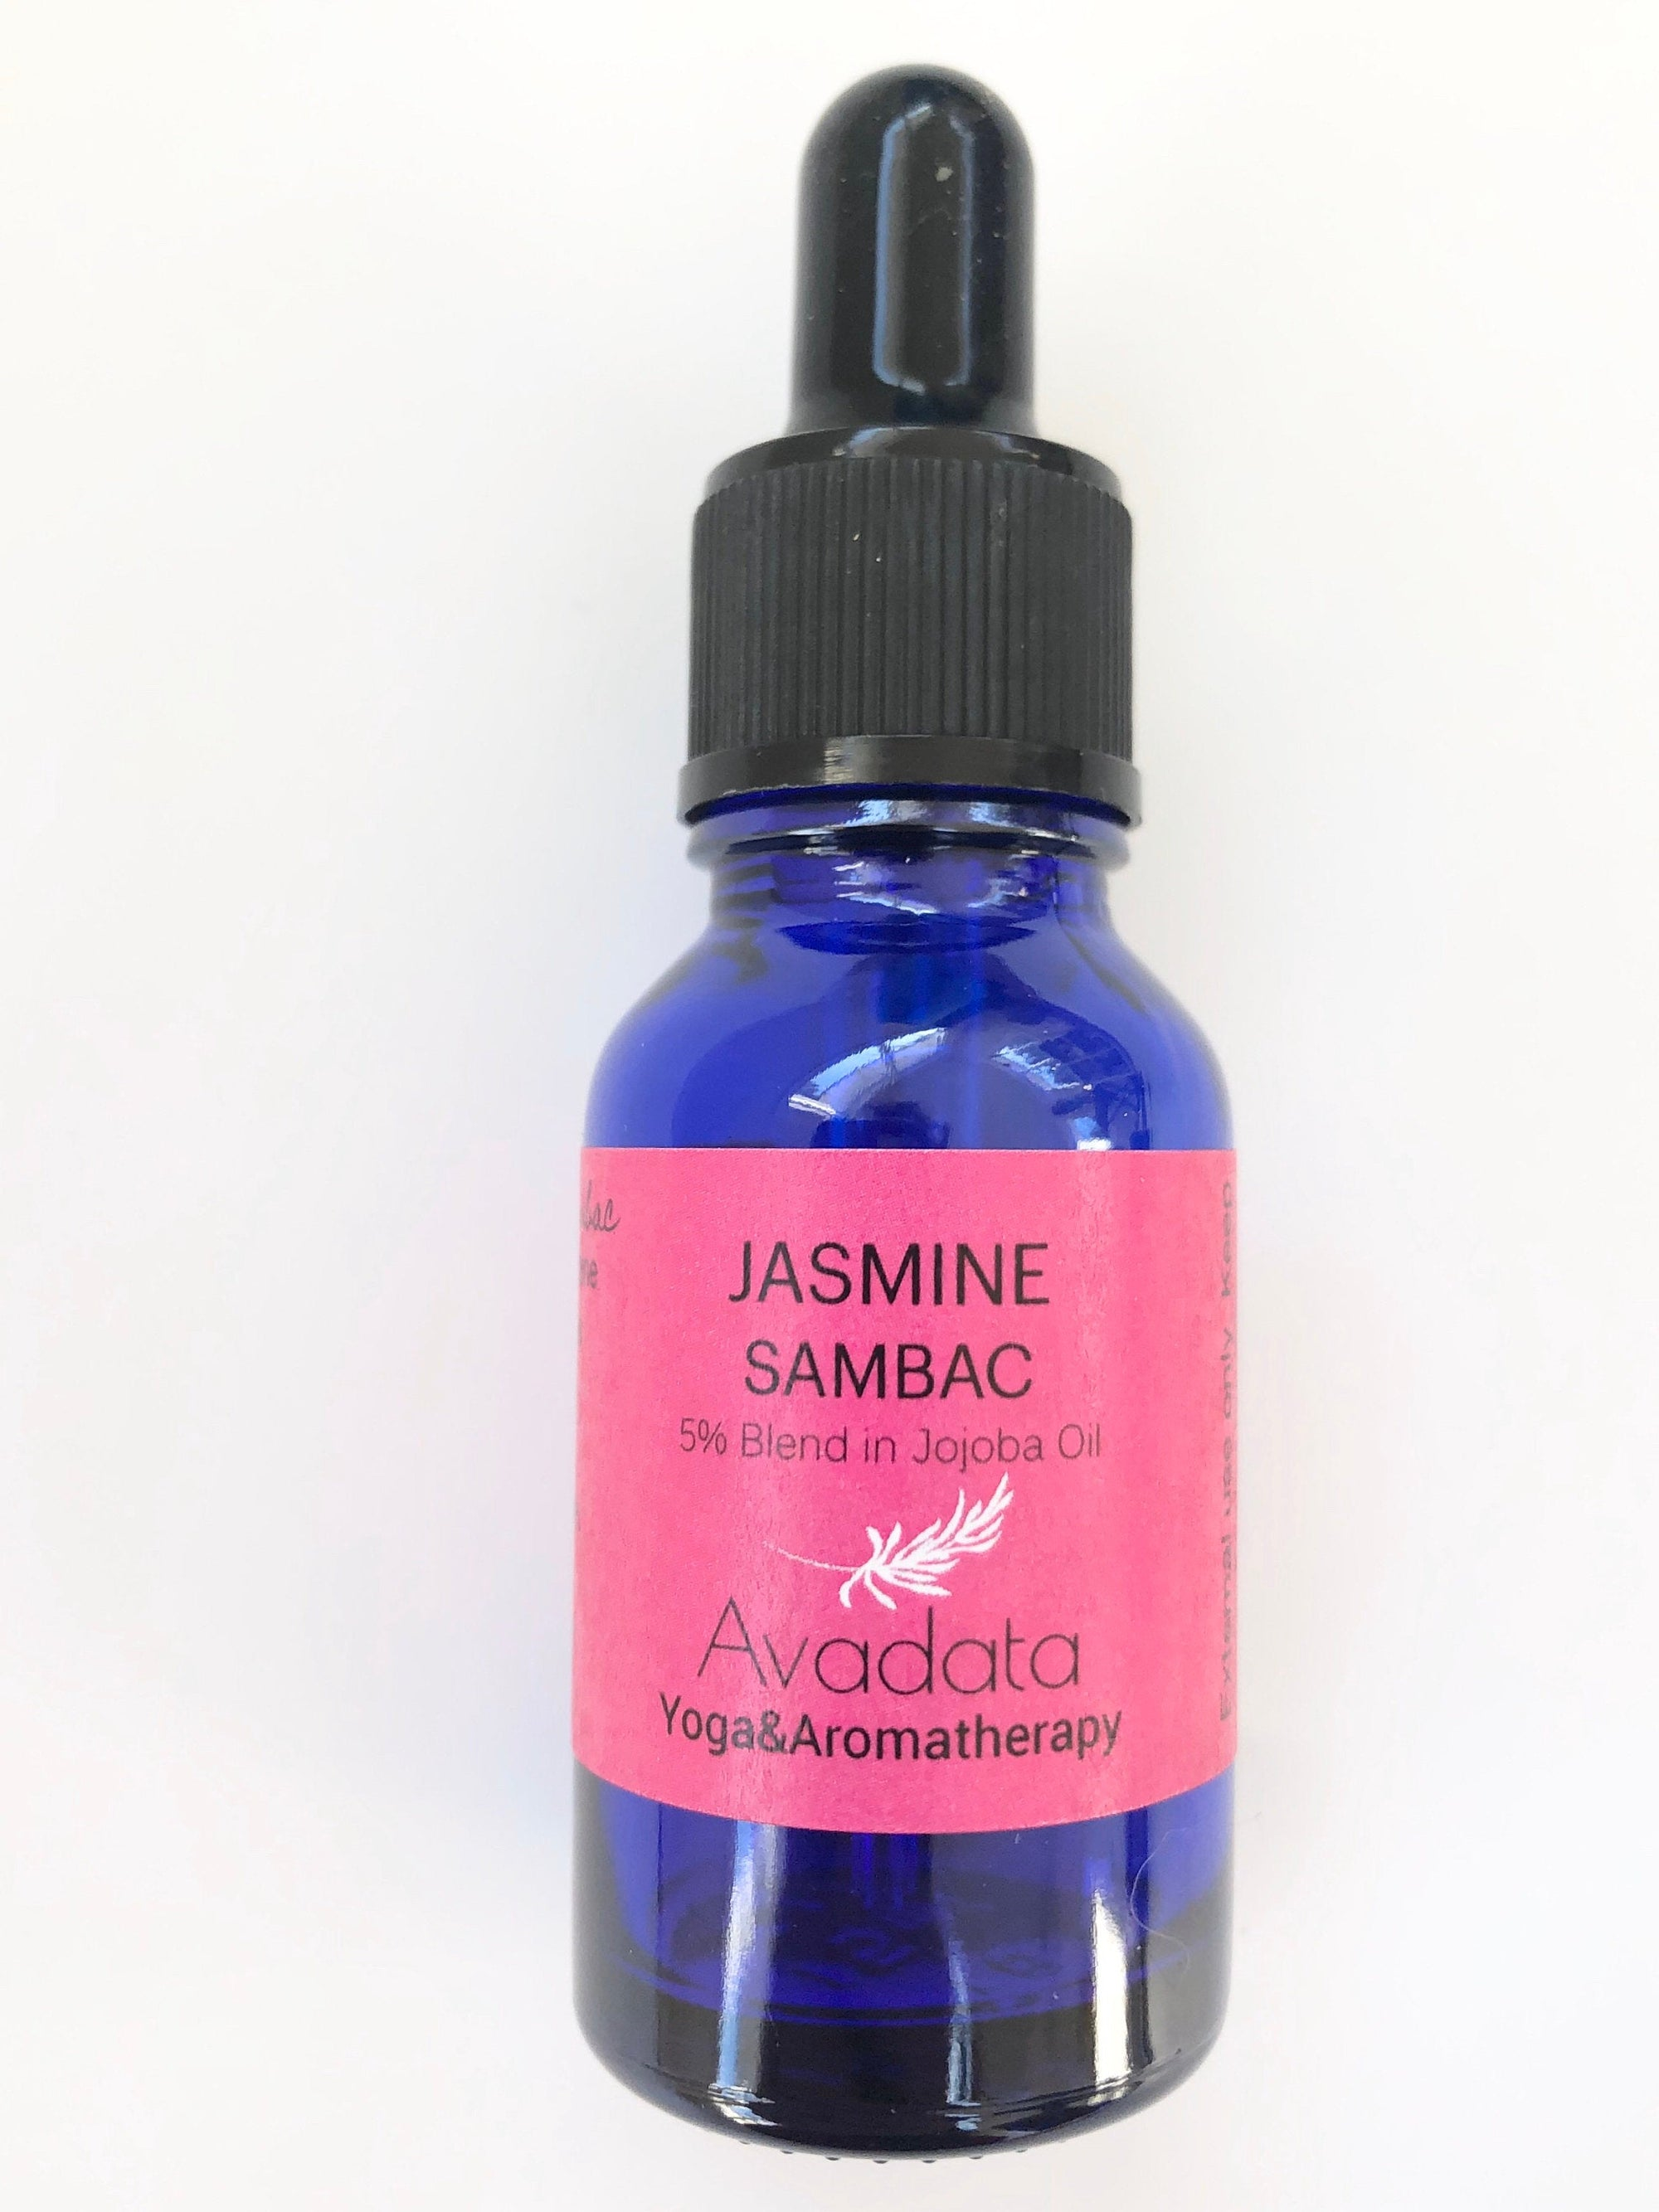 Jasmine Absolute - Diluted in Jojoba - Femme Wares Niagara Local Small Business